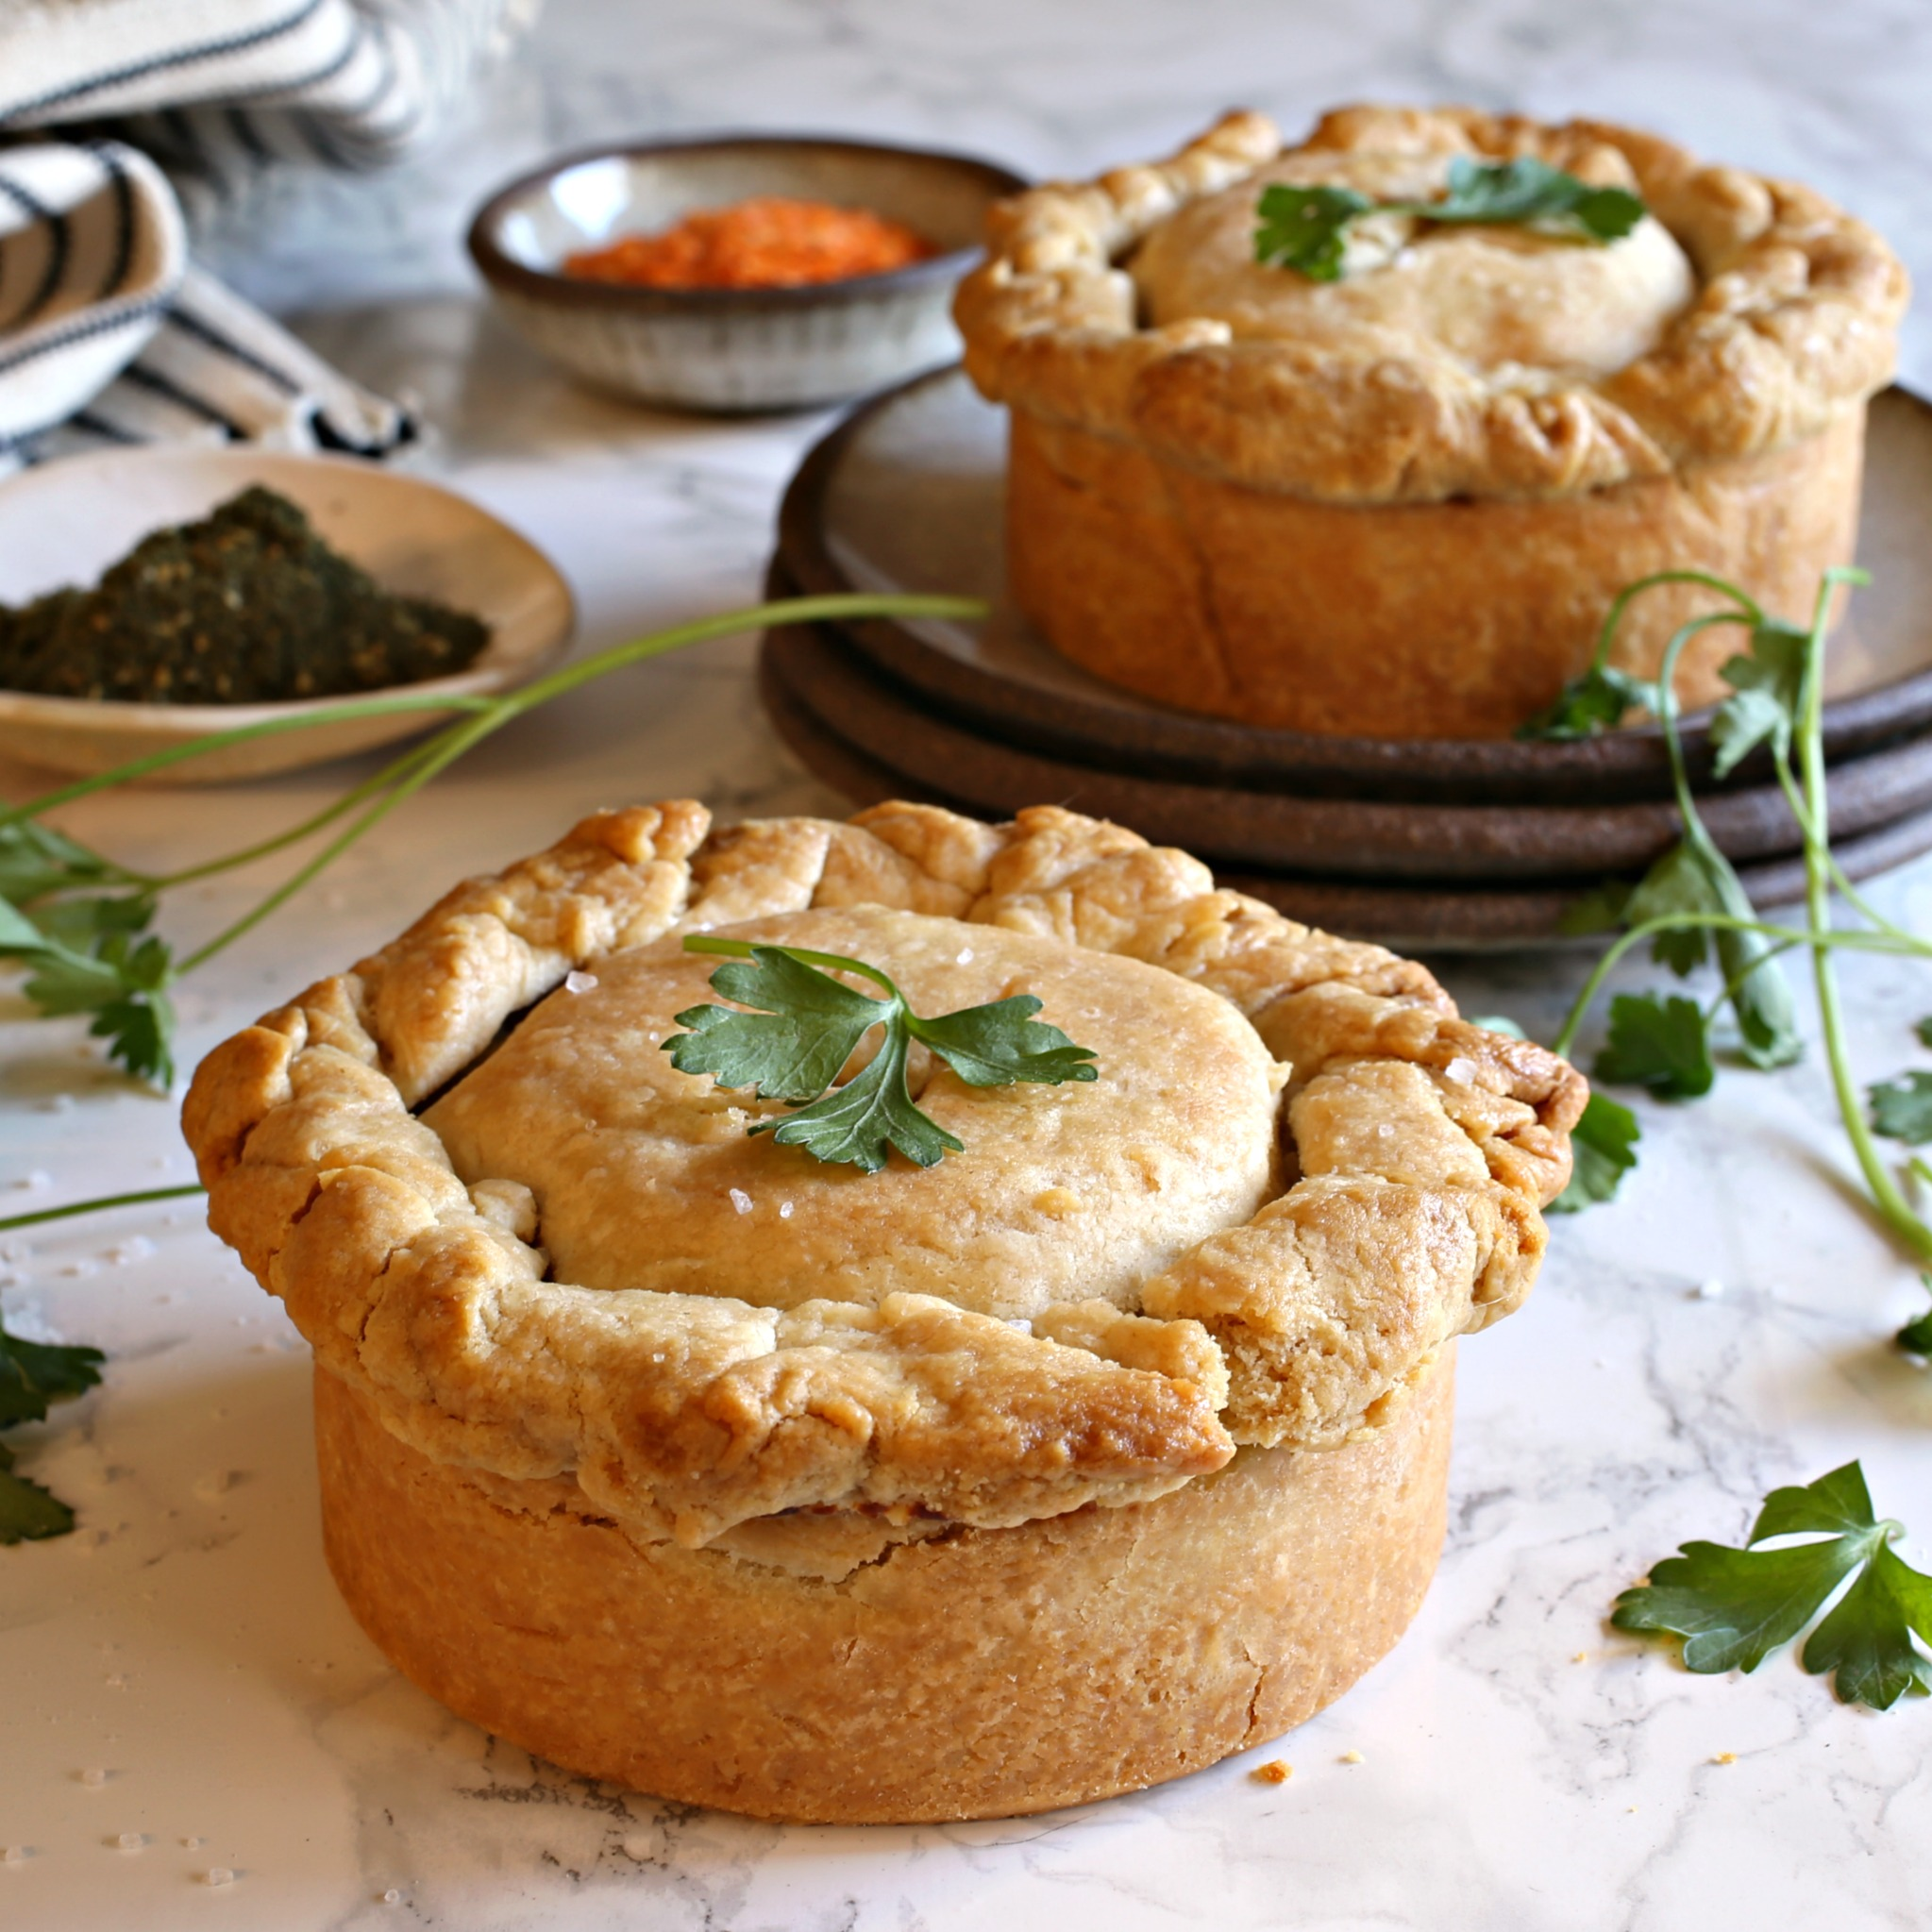 Recipe for individual pot pies filled with vegetables and red lentils in a cheesy sauce.